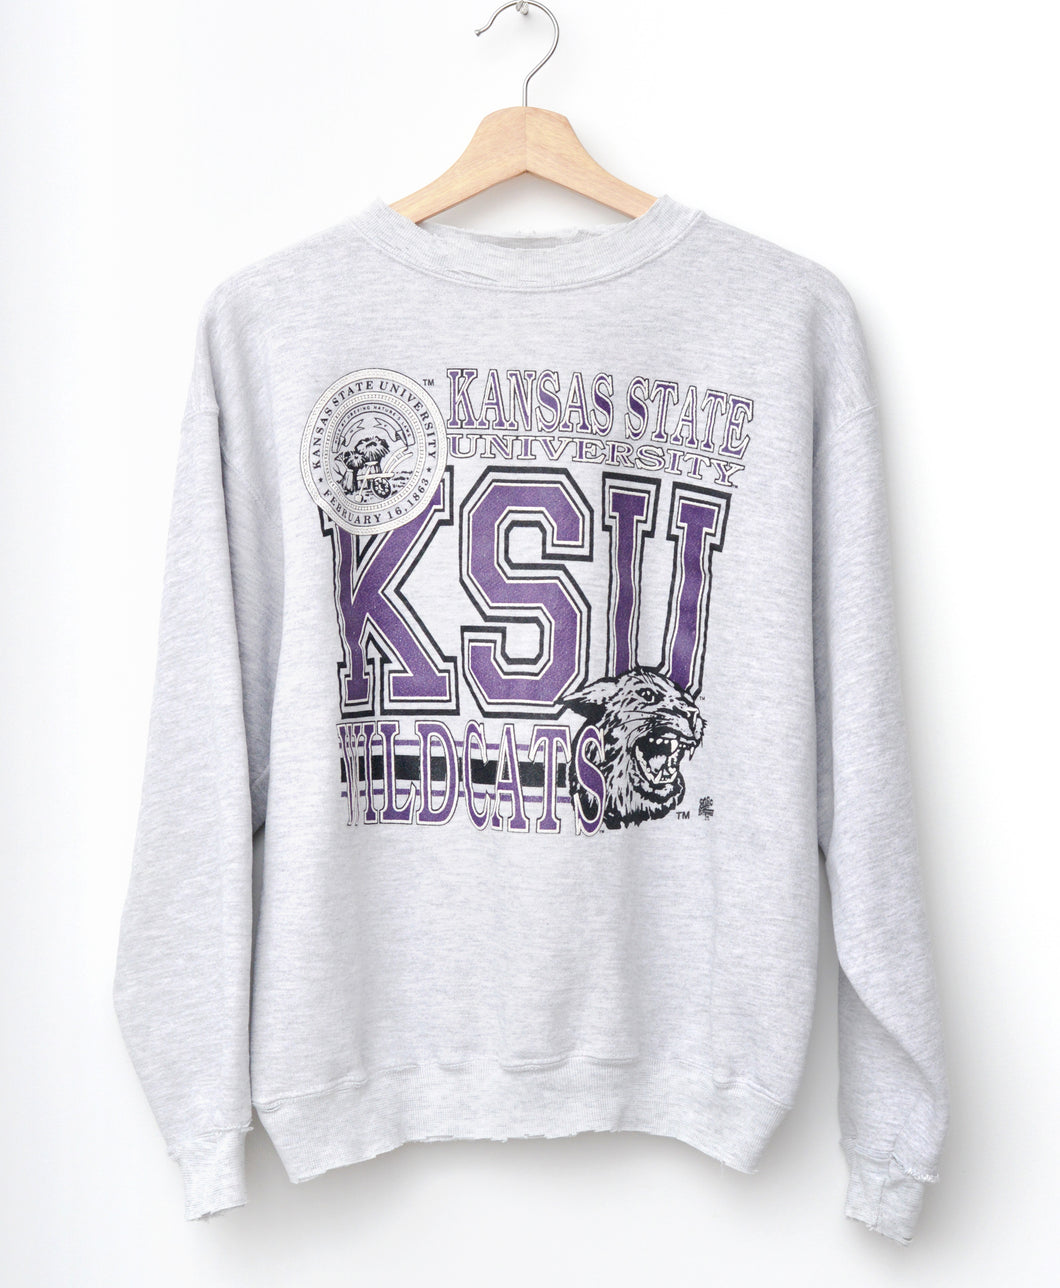 Kansas Wildcats Sweatshirt